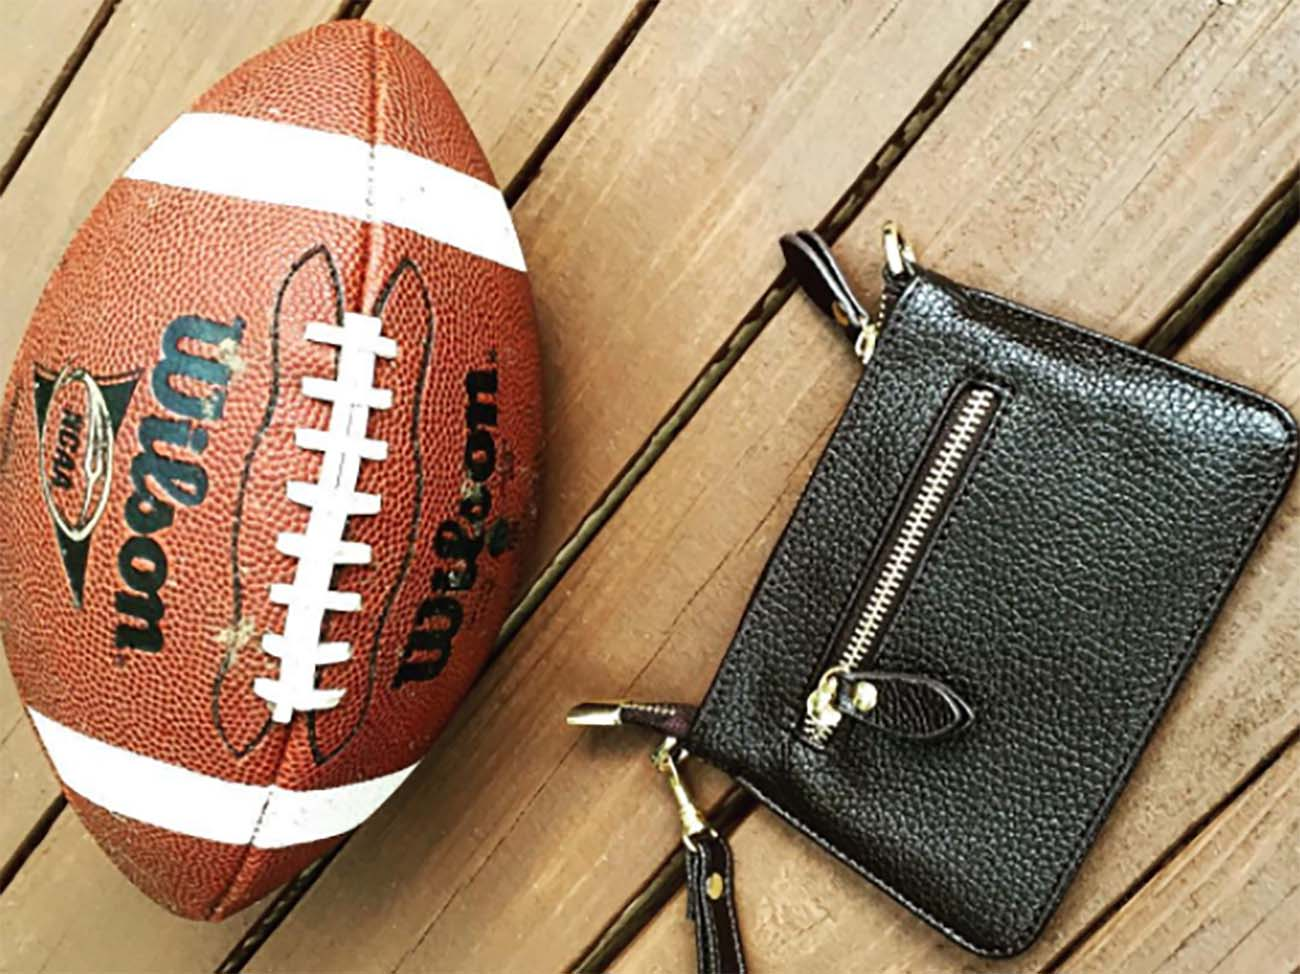 Charlotte Startup Policy Handbags Is Setting Out To Make The Nfl S Handbag Fashionable